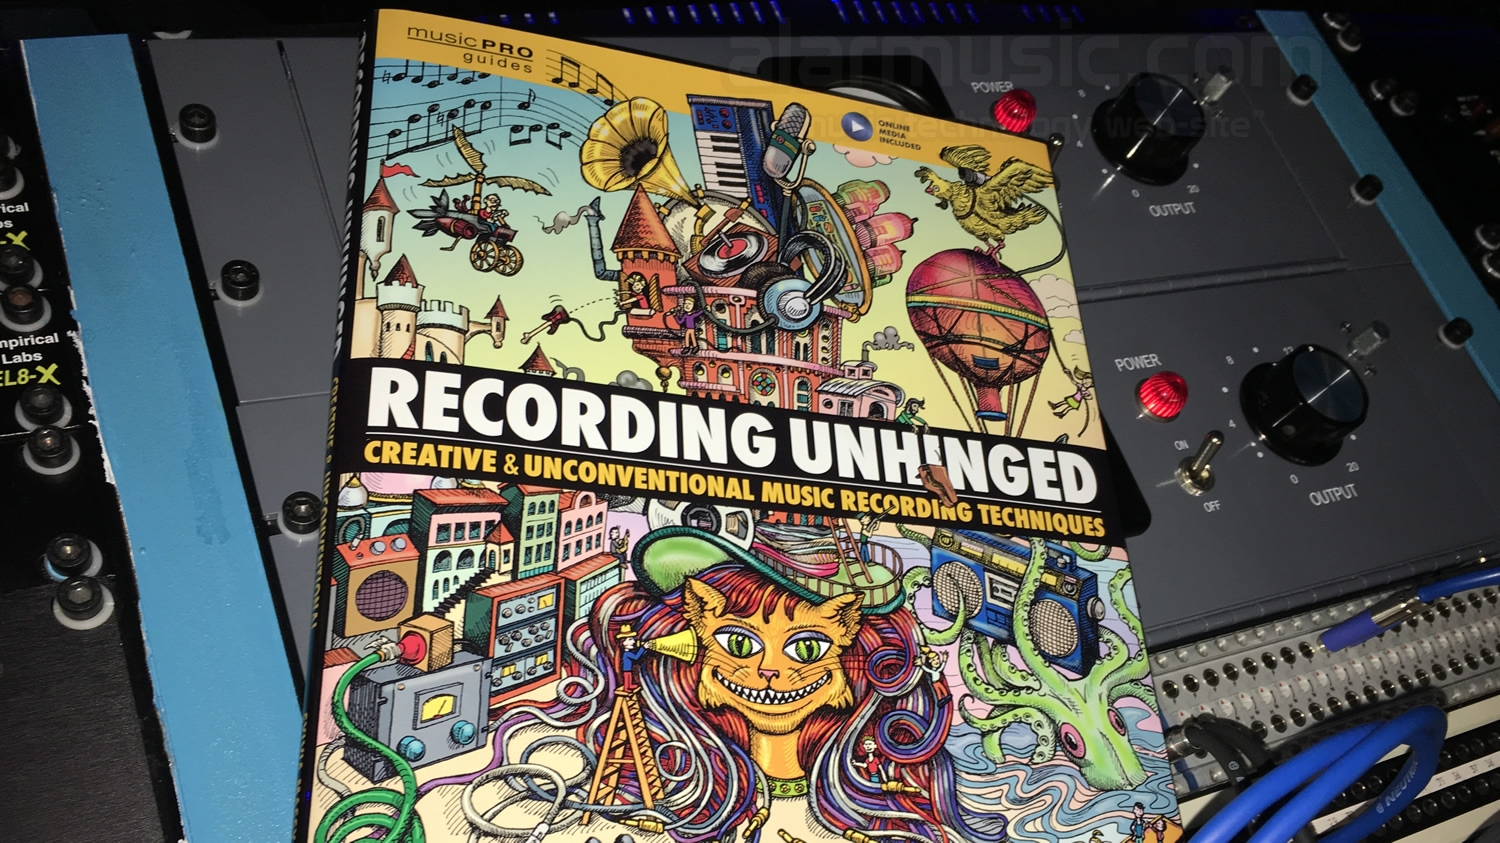 Recensione del libro di SYLVIA MASSY: RECORDING UNHINGED: CREATIVE AND UNCONVENTIONAL MUSIC RECORDING TECHNIQUES